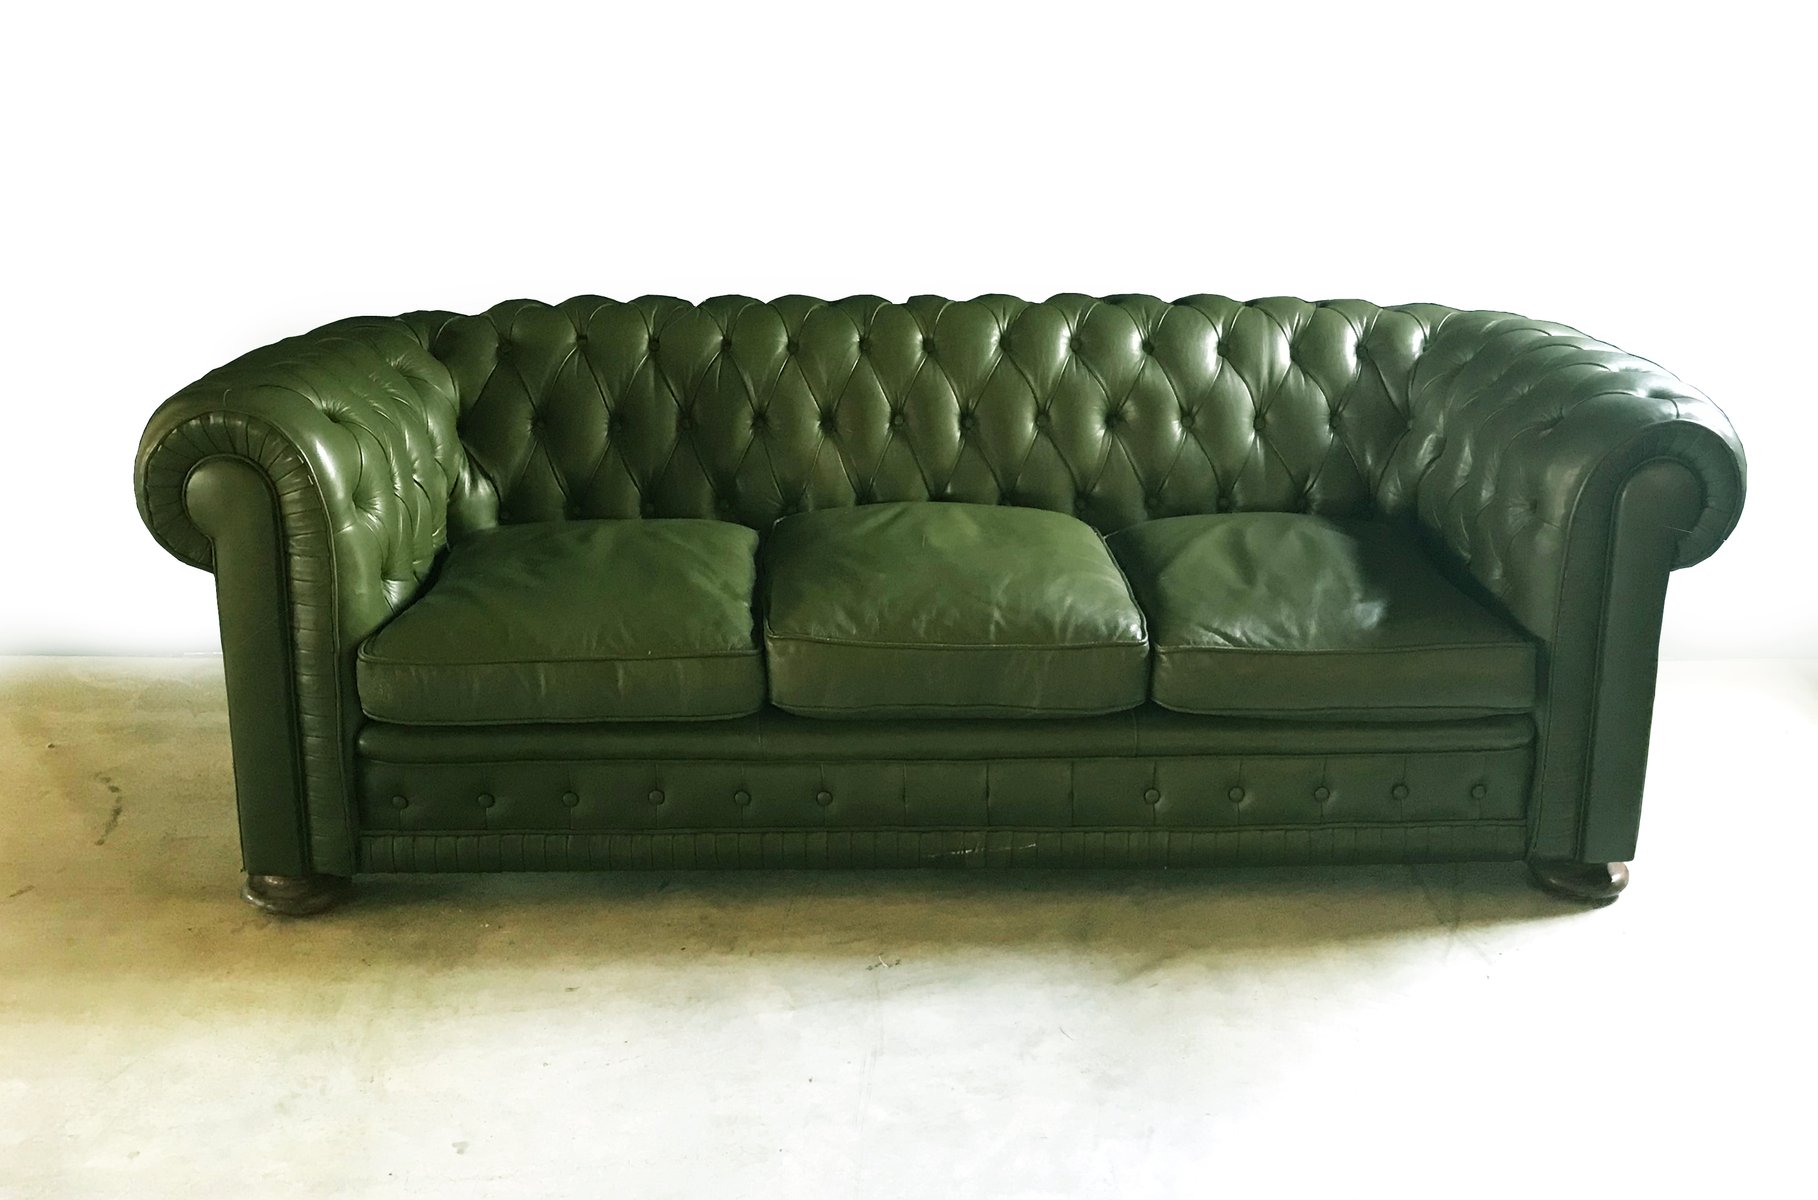 Green Leather Chesterfield Sofa 1970s For Sale At Pamono